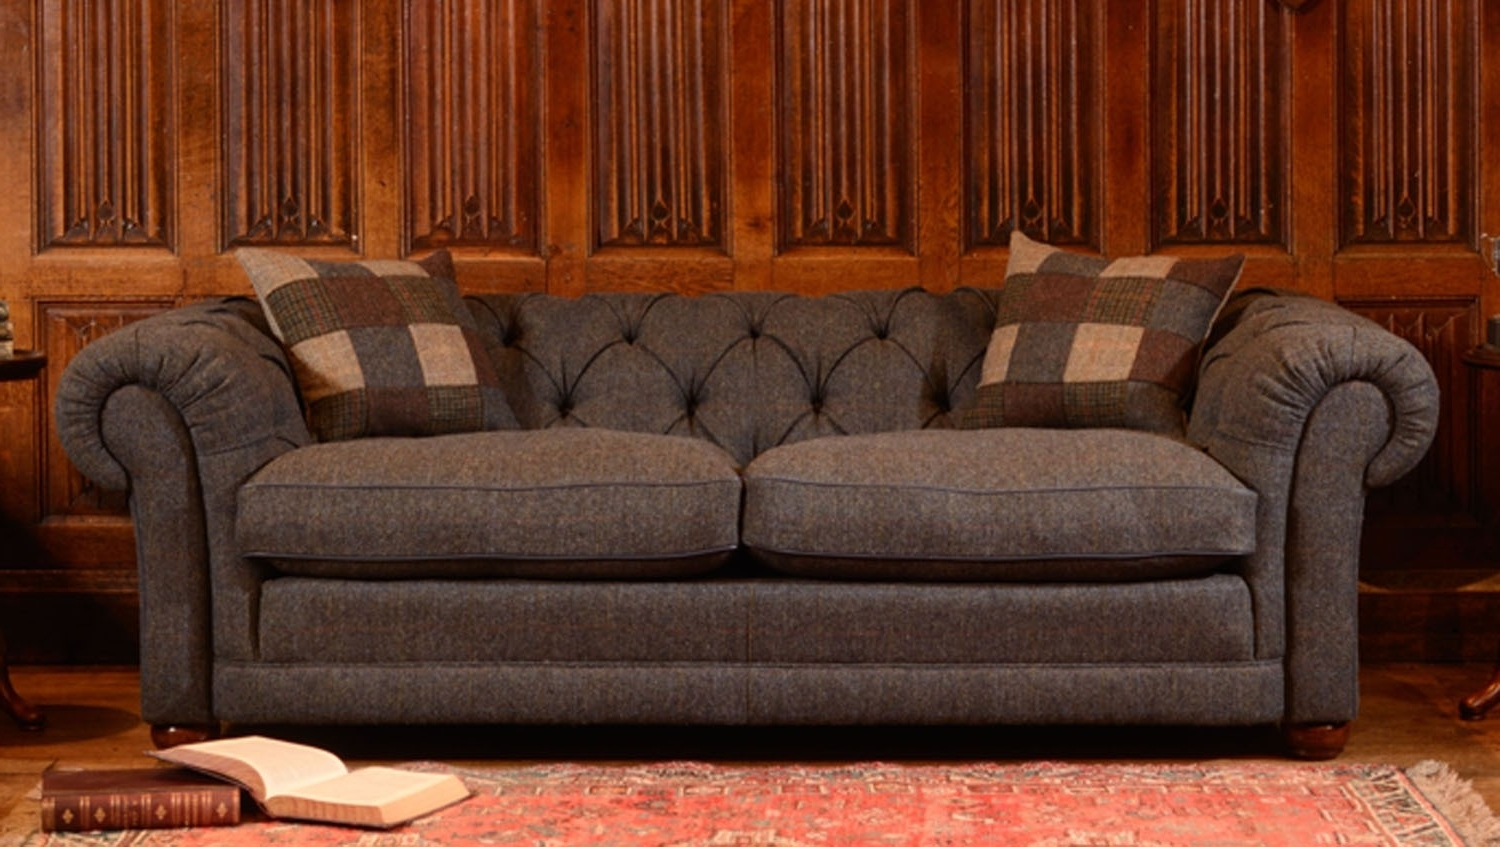 Tweed Fabric Sofas Within Most Up To Date Tetrad Harris Castlebay Petit Sofa (View 7 of 15)